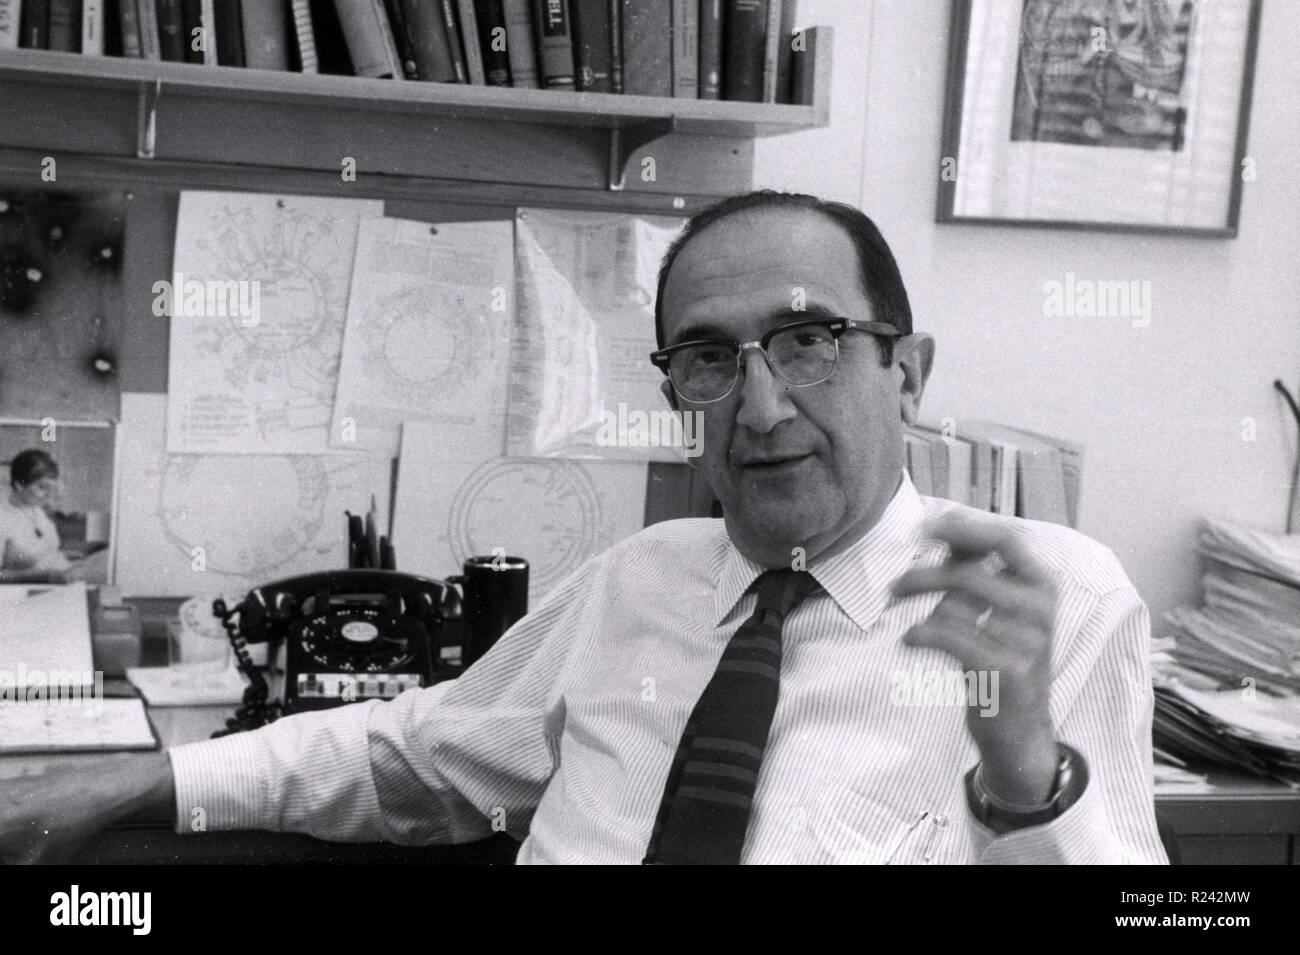 Salvador Luria in his office at MIT in Boston 1967. Salvador Edward Luria (1912 - 1991) Italian genetics researcher and microbiologist, later a naturalized American citizen. He won the Nobel Prize in Physiology or Medicine in 1969 Stock Photo